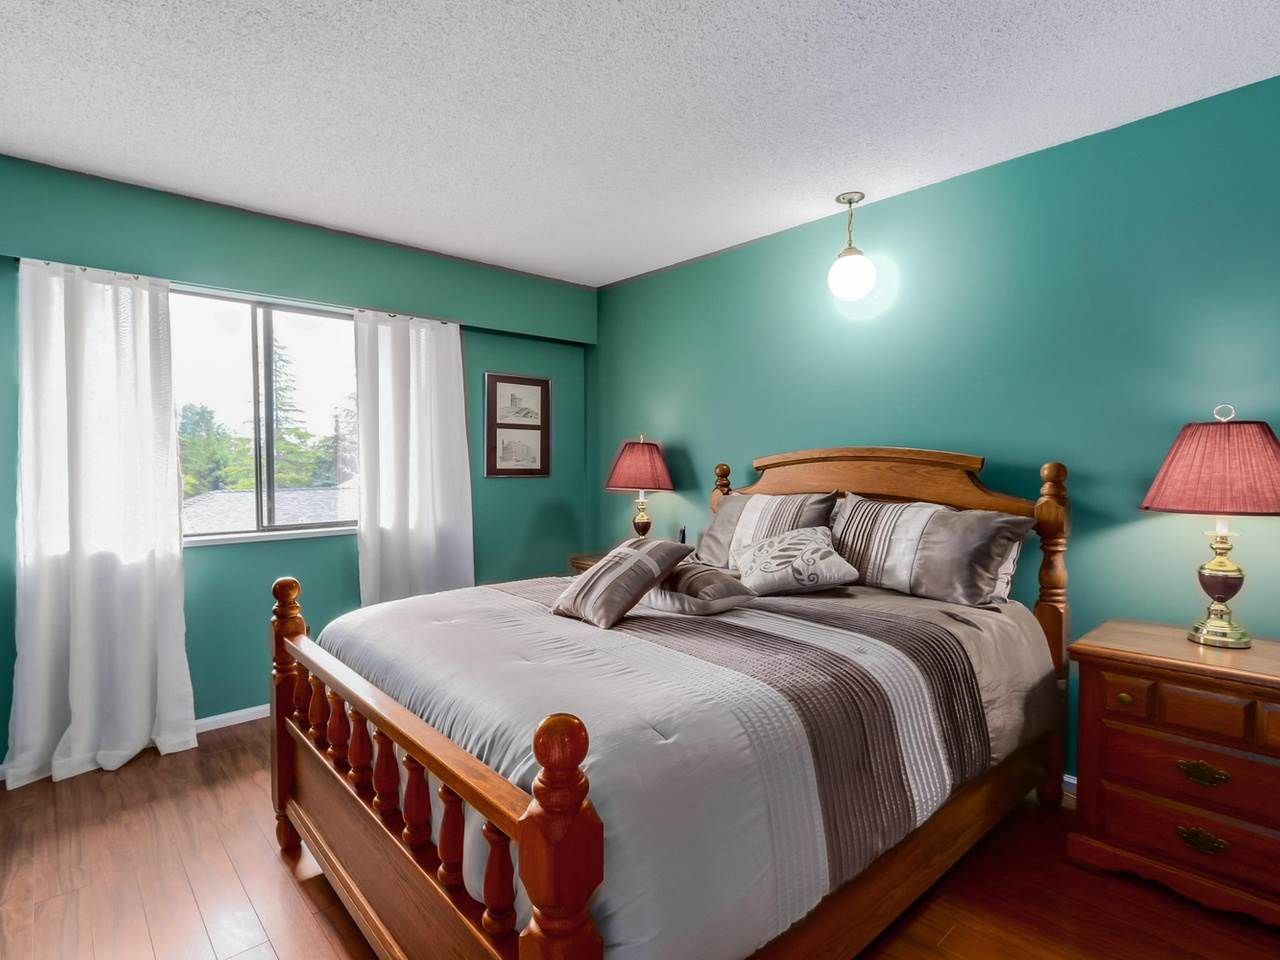 Photo 14: Photos: 4032 AYLING Street in Port Coquitlam: Oxford Heights House for sale : MLS®# R2074528